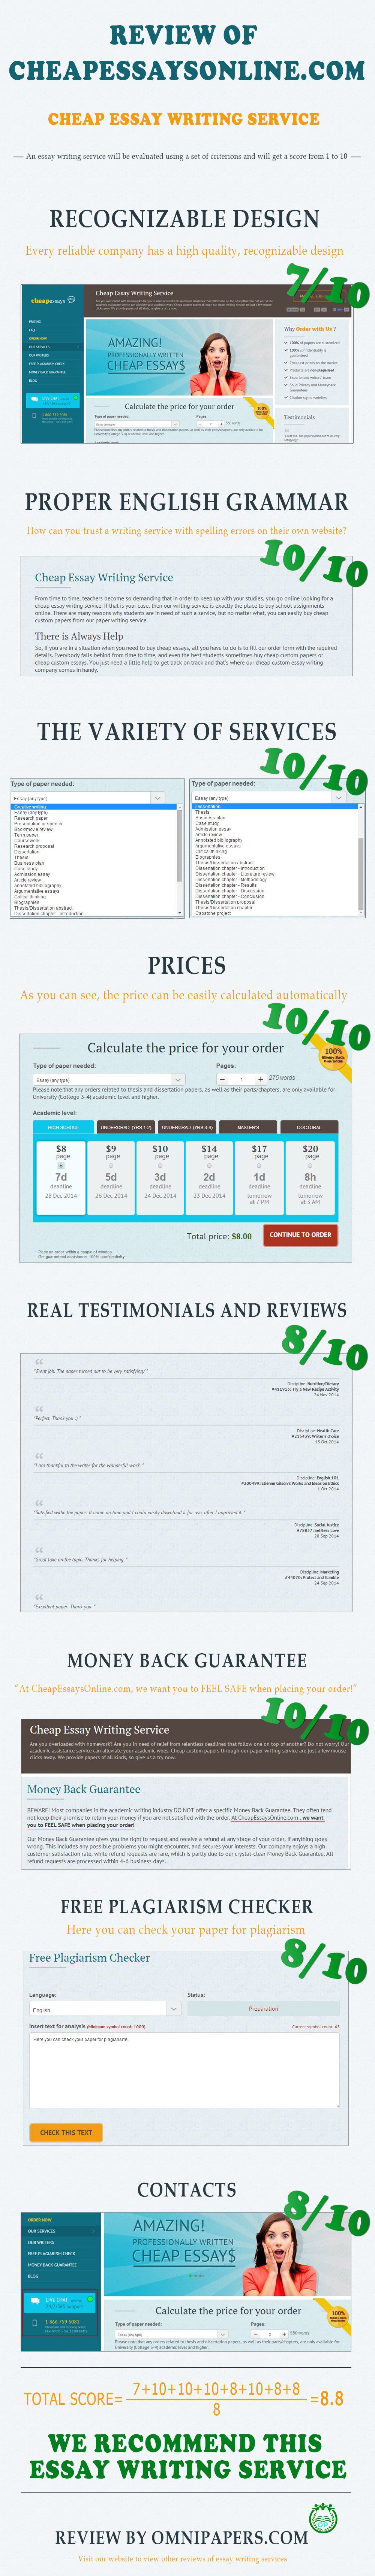 Essay Thesis Statement Examples Its Infographicreview Of Cheapessaysonlinecom  Cheap Essay Writing  Service This Service Have Got A Good Score And I Recommend It For Students Example Of An English Essay also Thesis Statement Examples For Essays Its Infographicreview Of Cheapessaysonlinecom  Cheap Essay  Research Essay Proposal Example